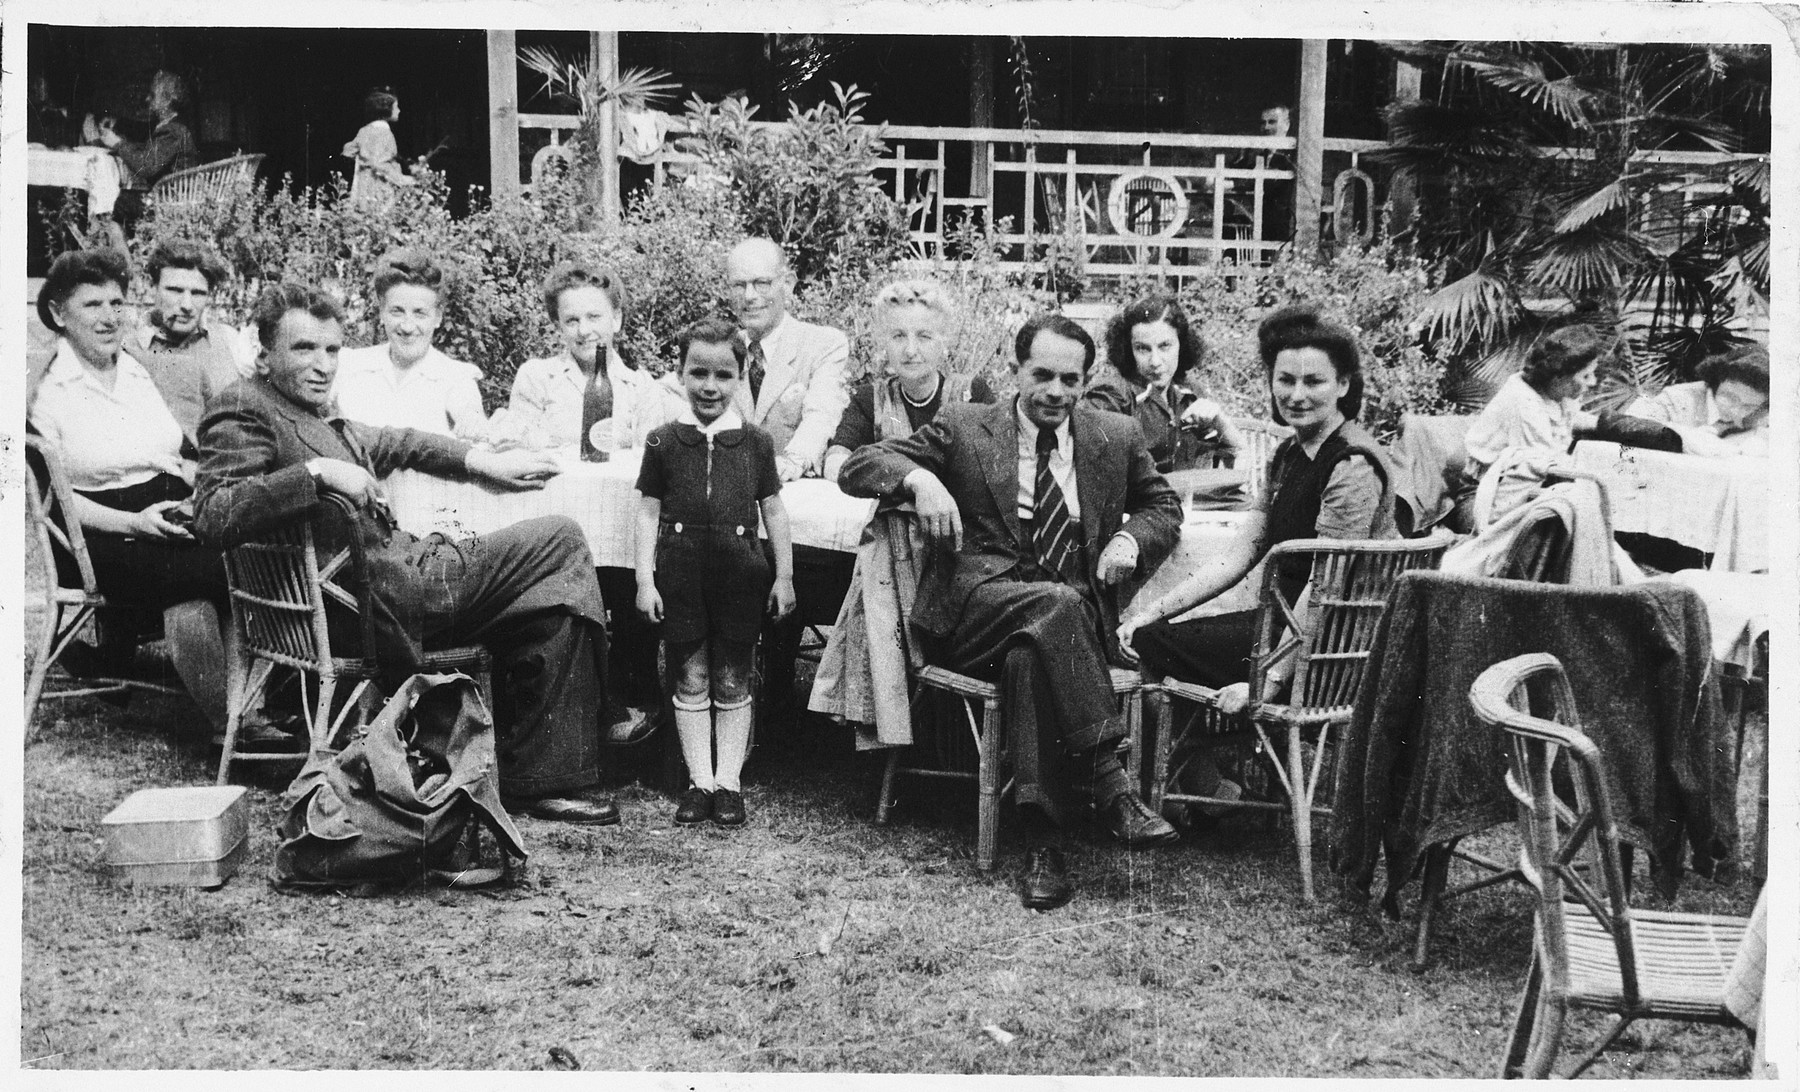 Jewish refugees socialize in a garden in Shanghai.  Among those pictured are Ana, Alfred and Rudolf Brosan (at the left) and Richard Brosan (second from the right).